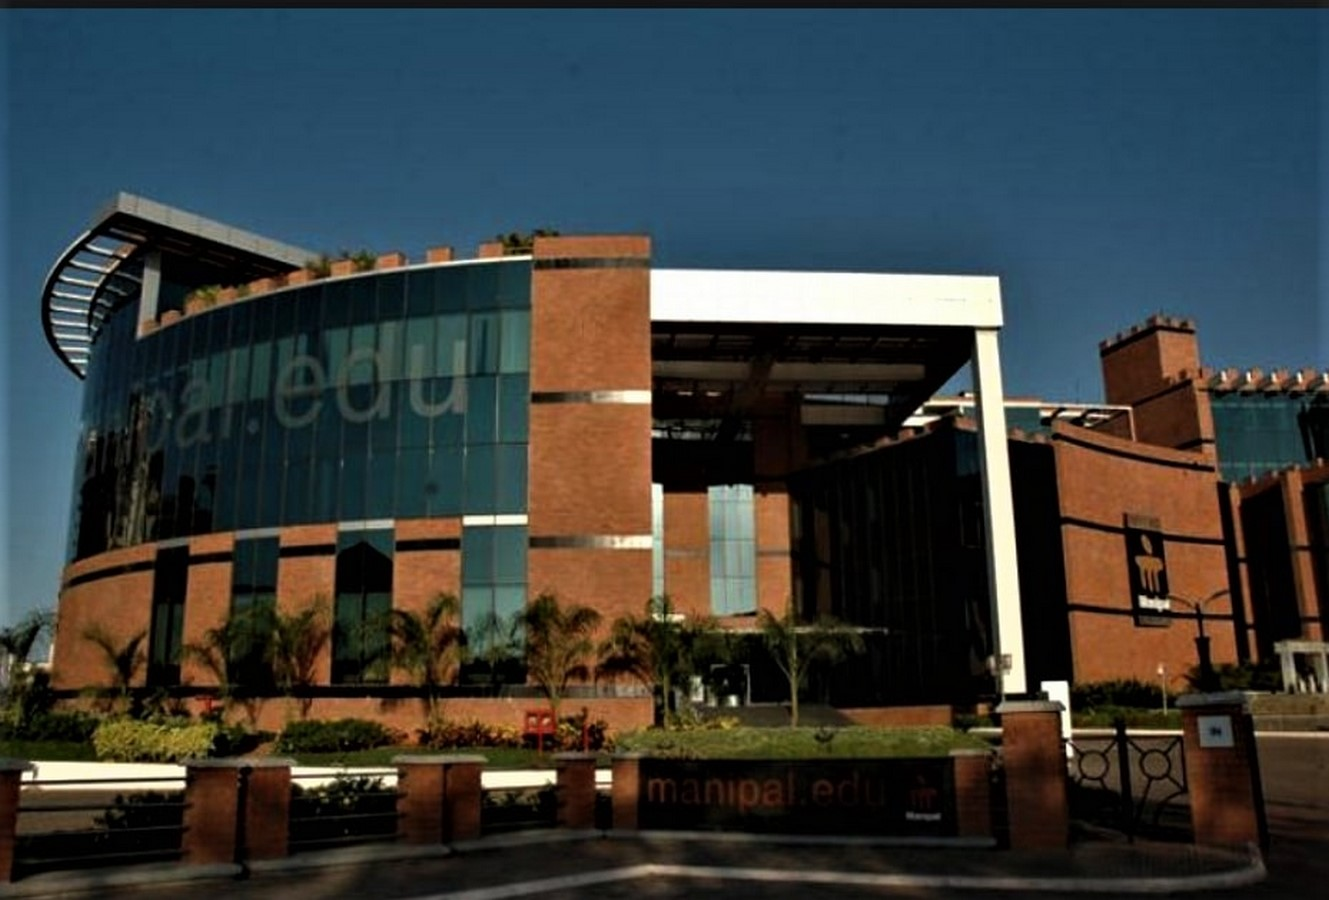 Manipal School of Architecture and Planning, Manipal